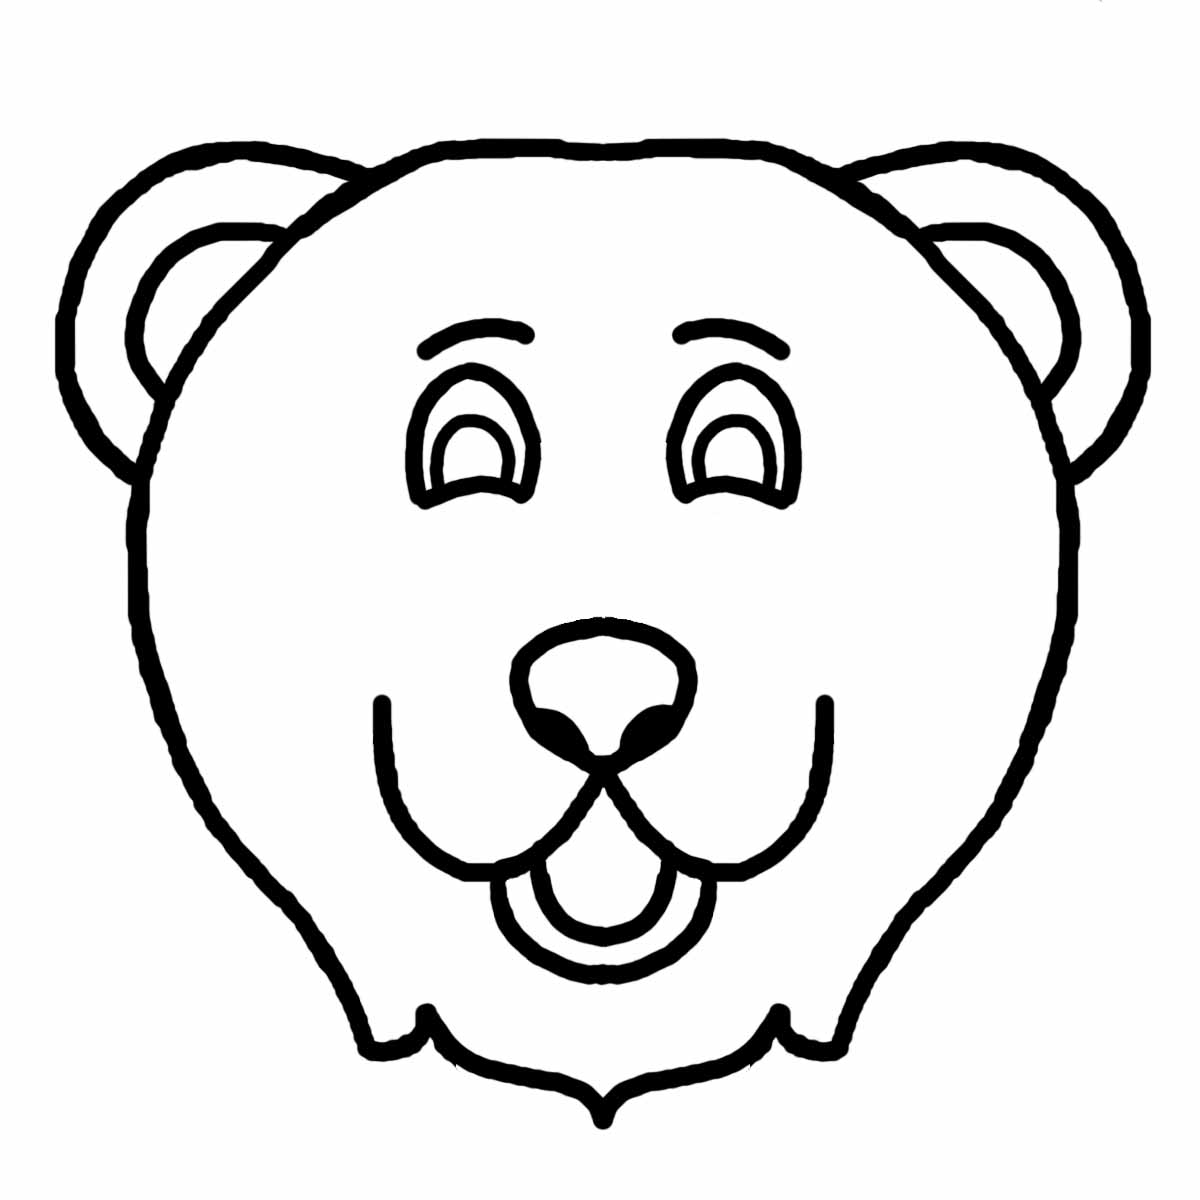 Cartoon Images Of Bears